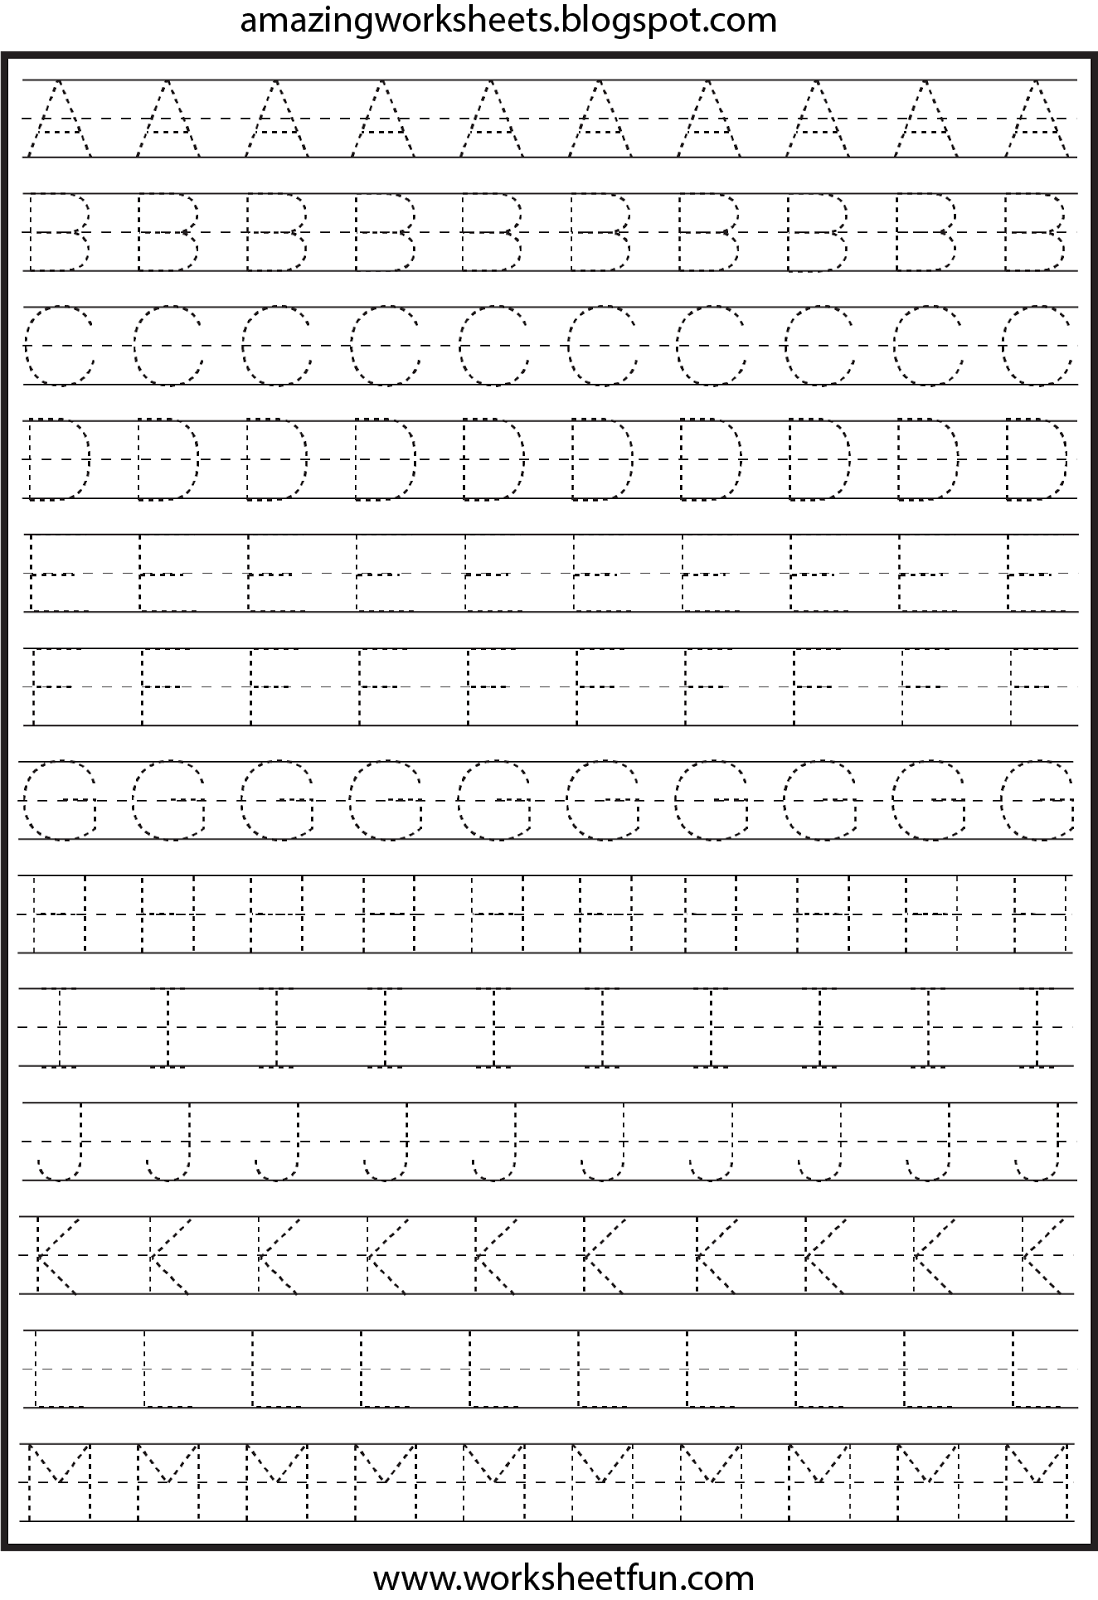 worksheet Abc Worksheets For Pre-k free printable worksheets pre k pinterest letter tracing for kindergarten capital letters alphabet 26 prin